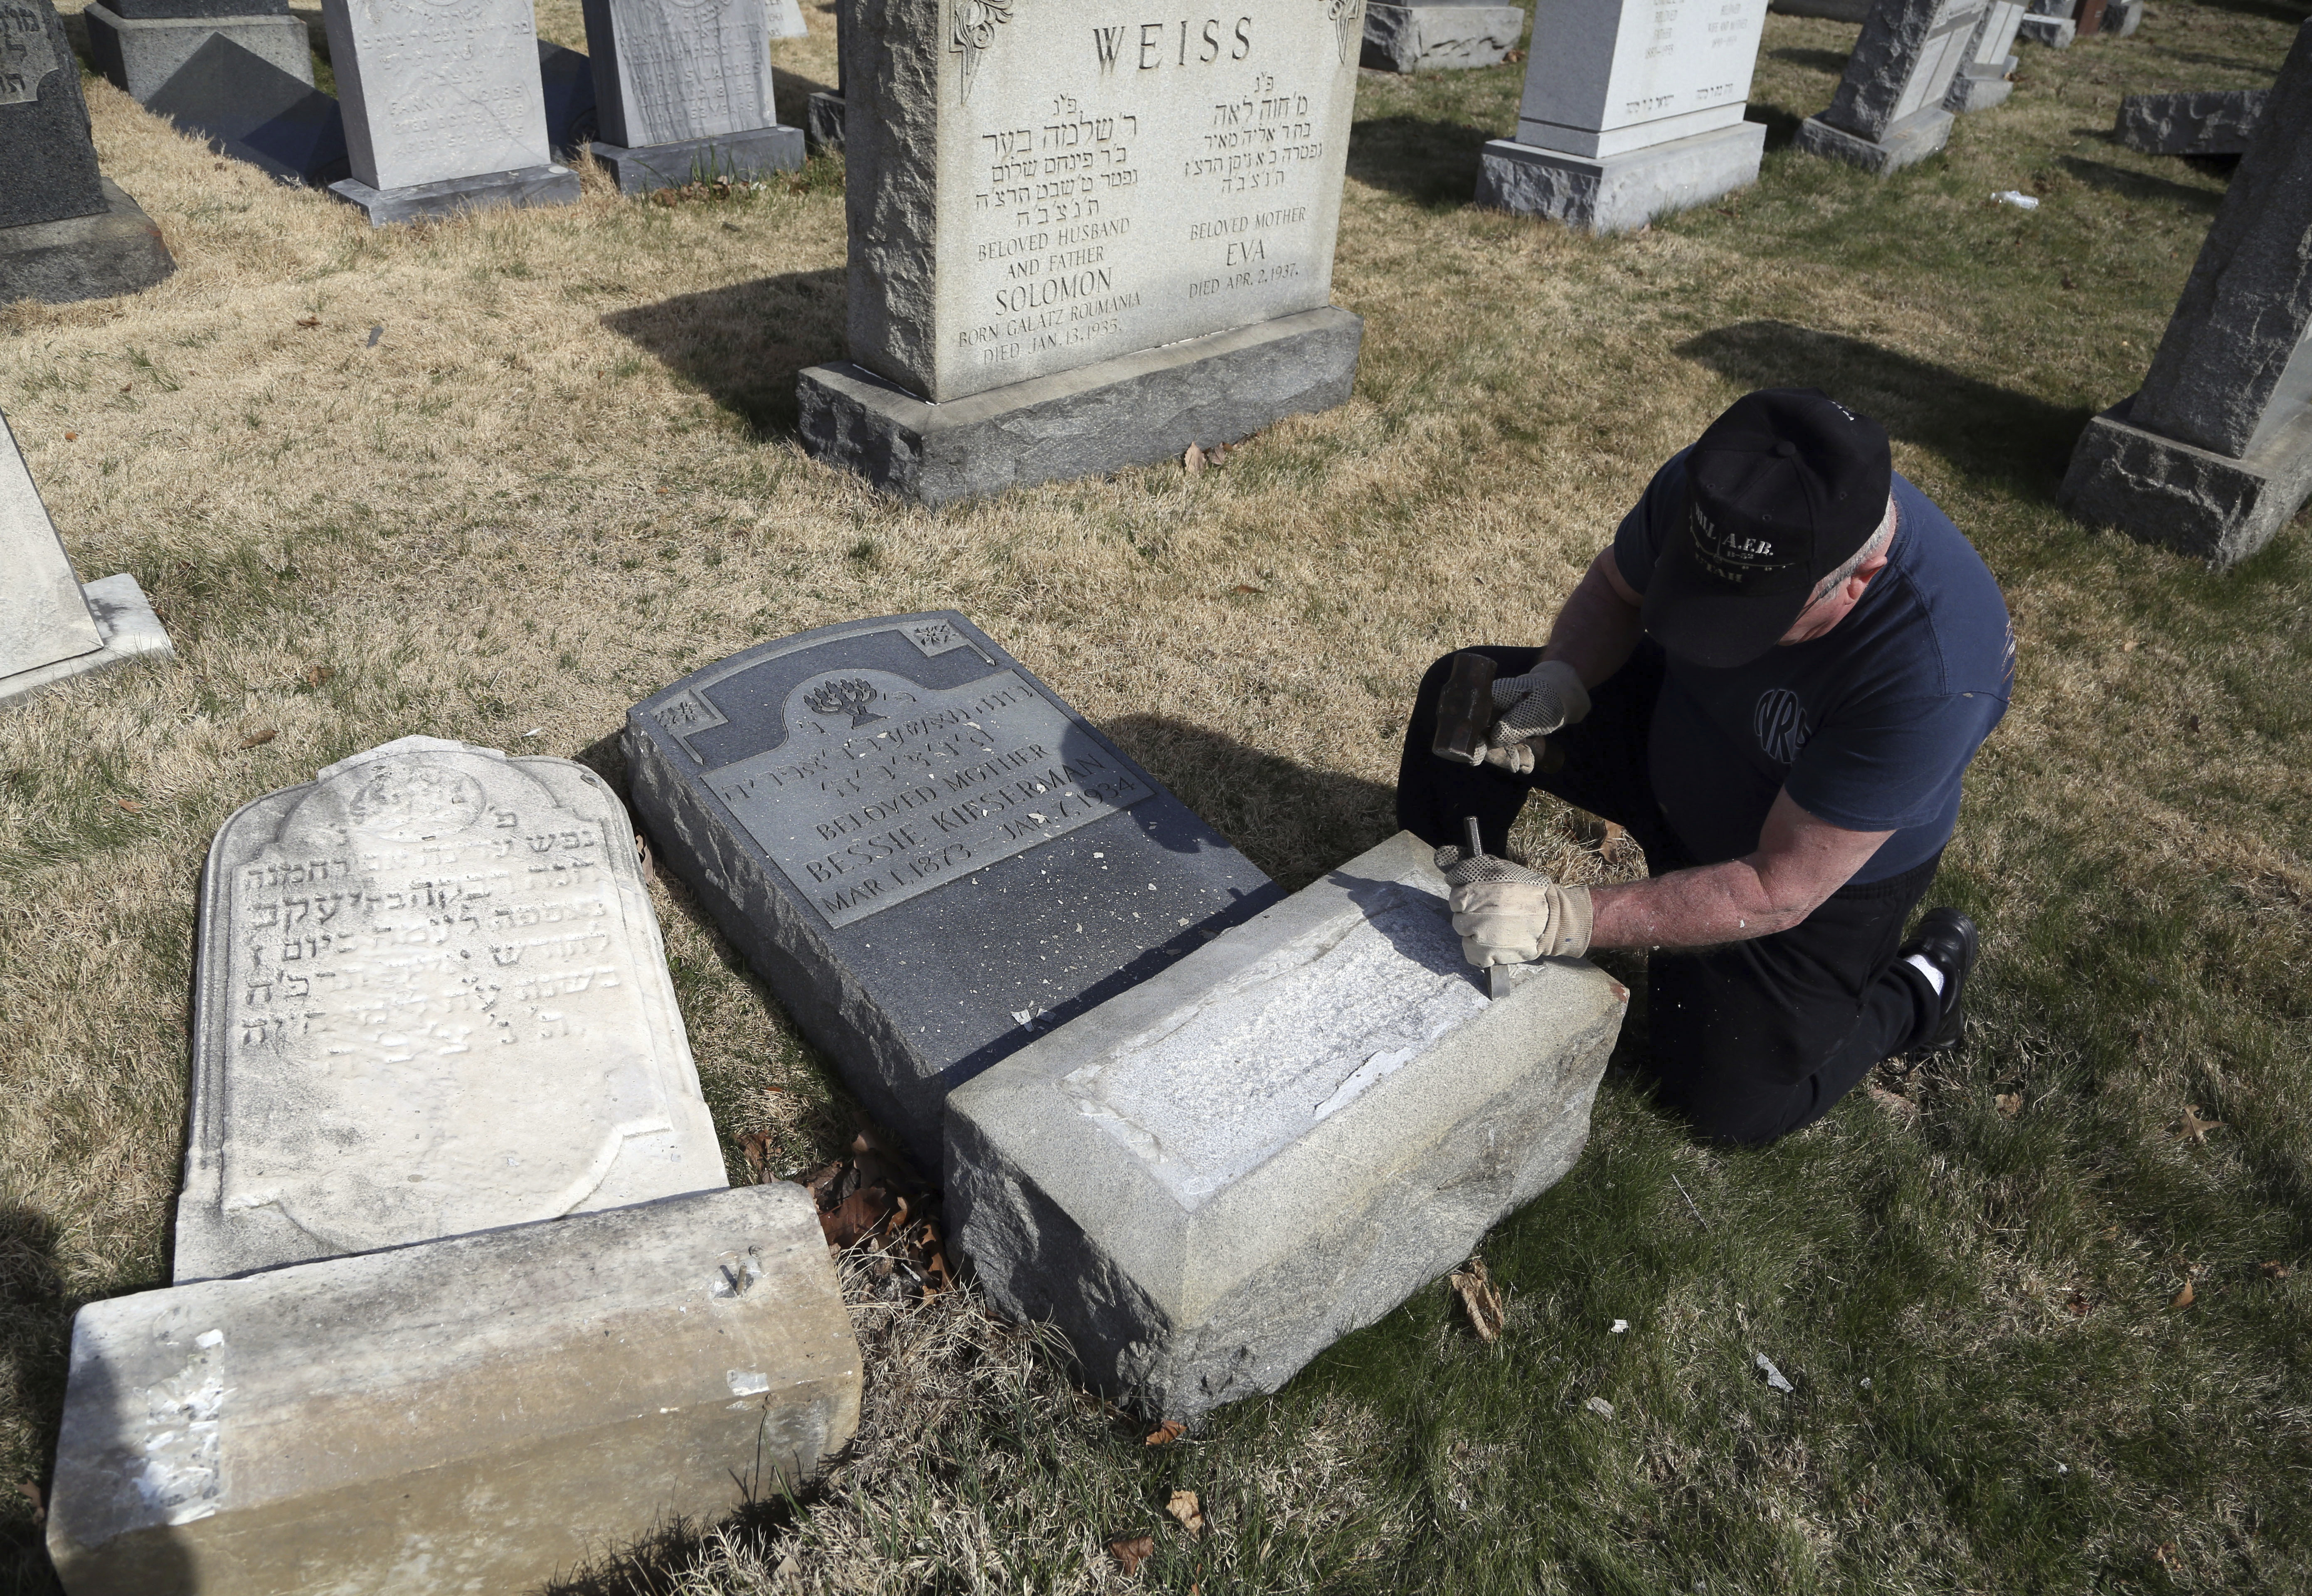 Trump supporter Bob, who declined to give his last name, volunteers his time and prepares the base of a damaged headstone, Feb. 28, 2017, in Philadelphia. Scores of volunteers are expected to help in an organized effort to clean up and restore the J